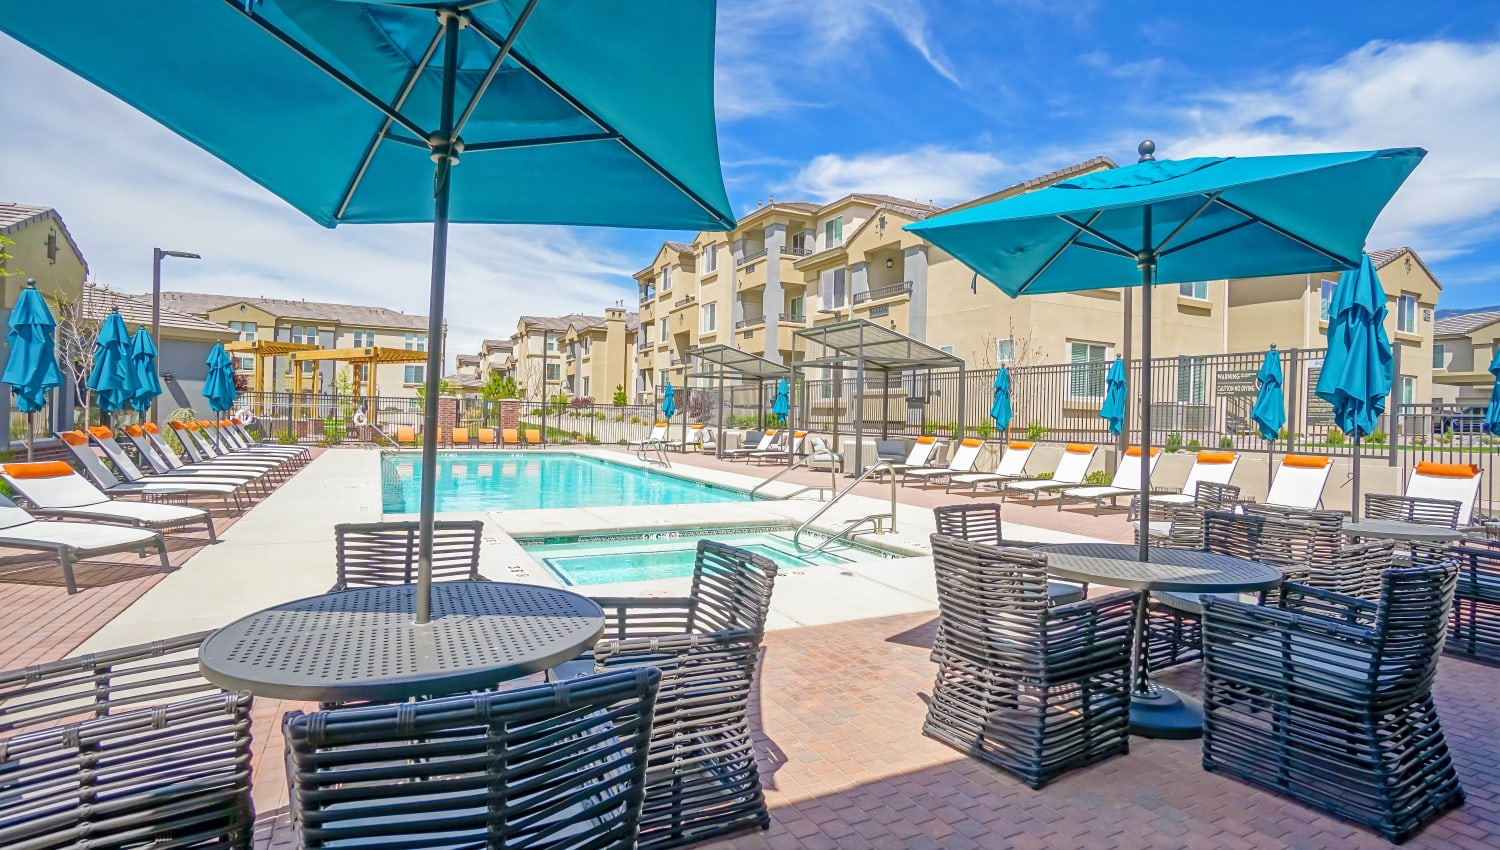 Chaise lounge chairs and shaded seating near the resort-style swimming pool at Olympus Northpoint in Albuquerque, New Mexico